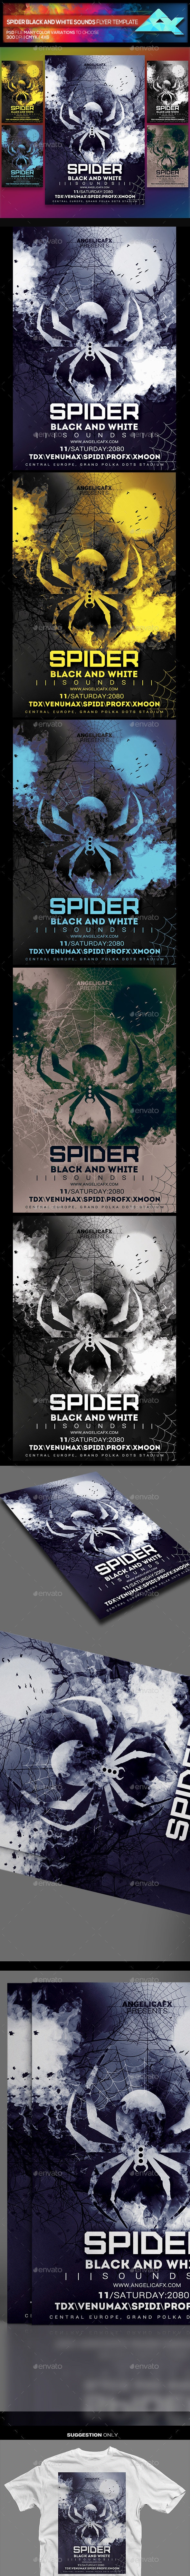 Spider Black and White Sounds Photoshop Flyer Template - Flyers Print Templates